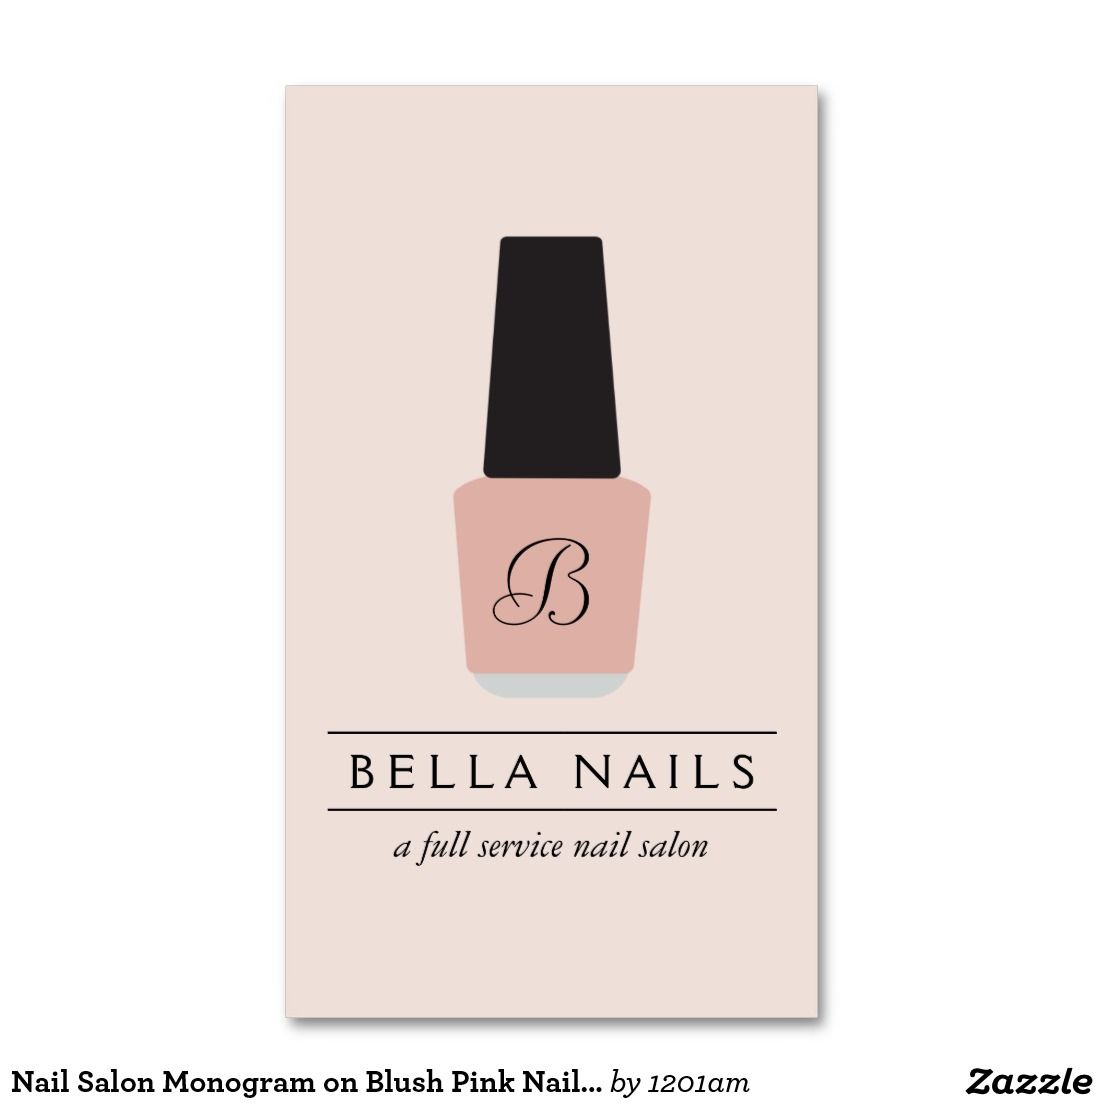 Customizable Nail Salon Business Card Features Monogram Logo with ...